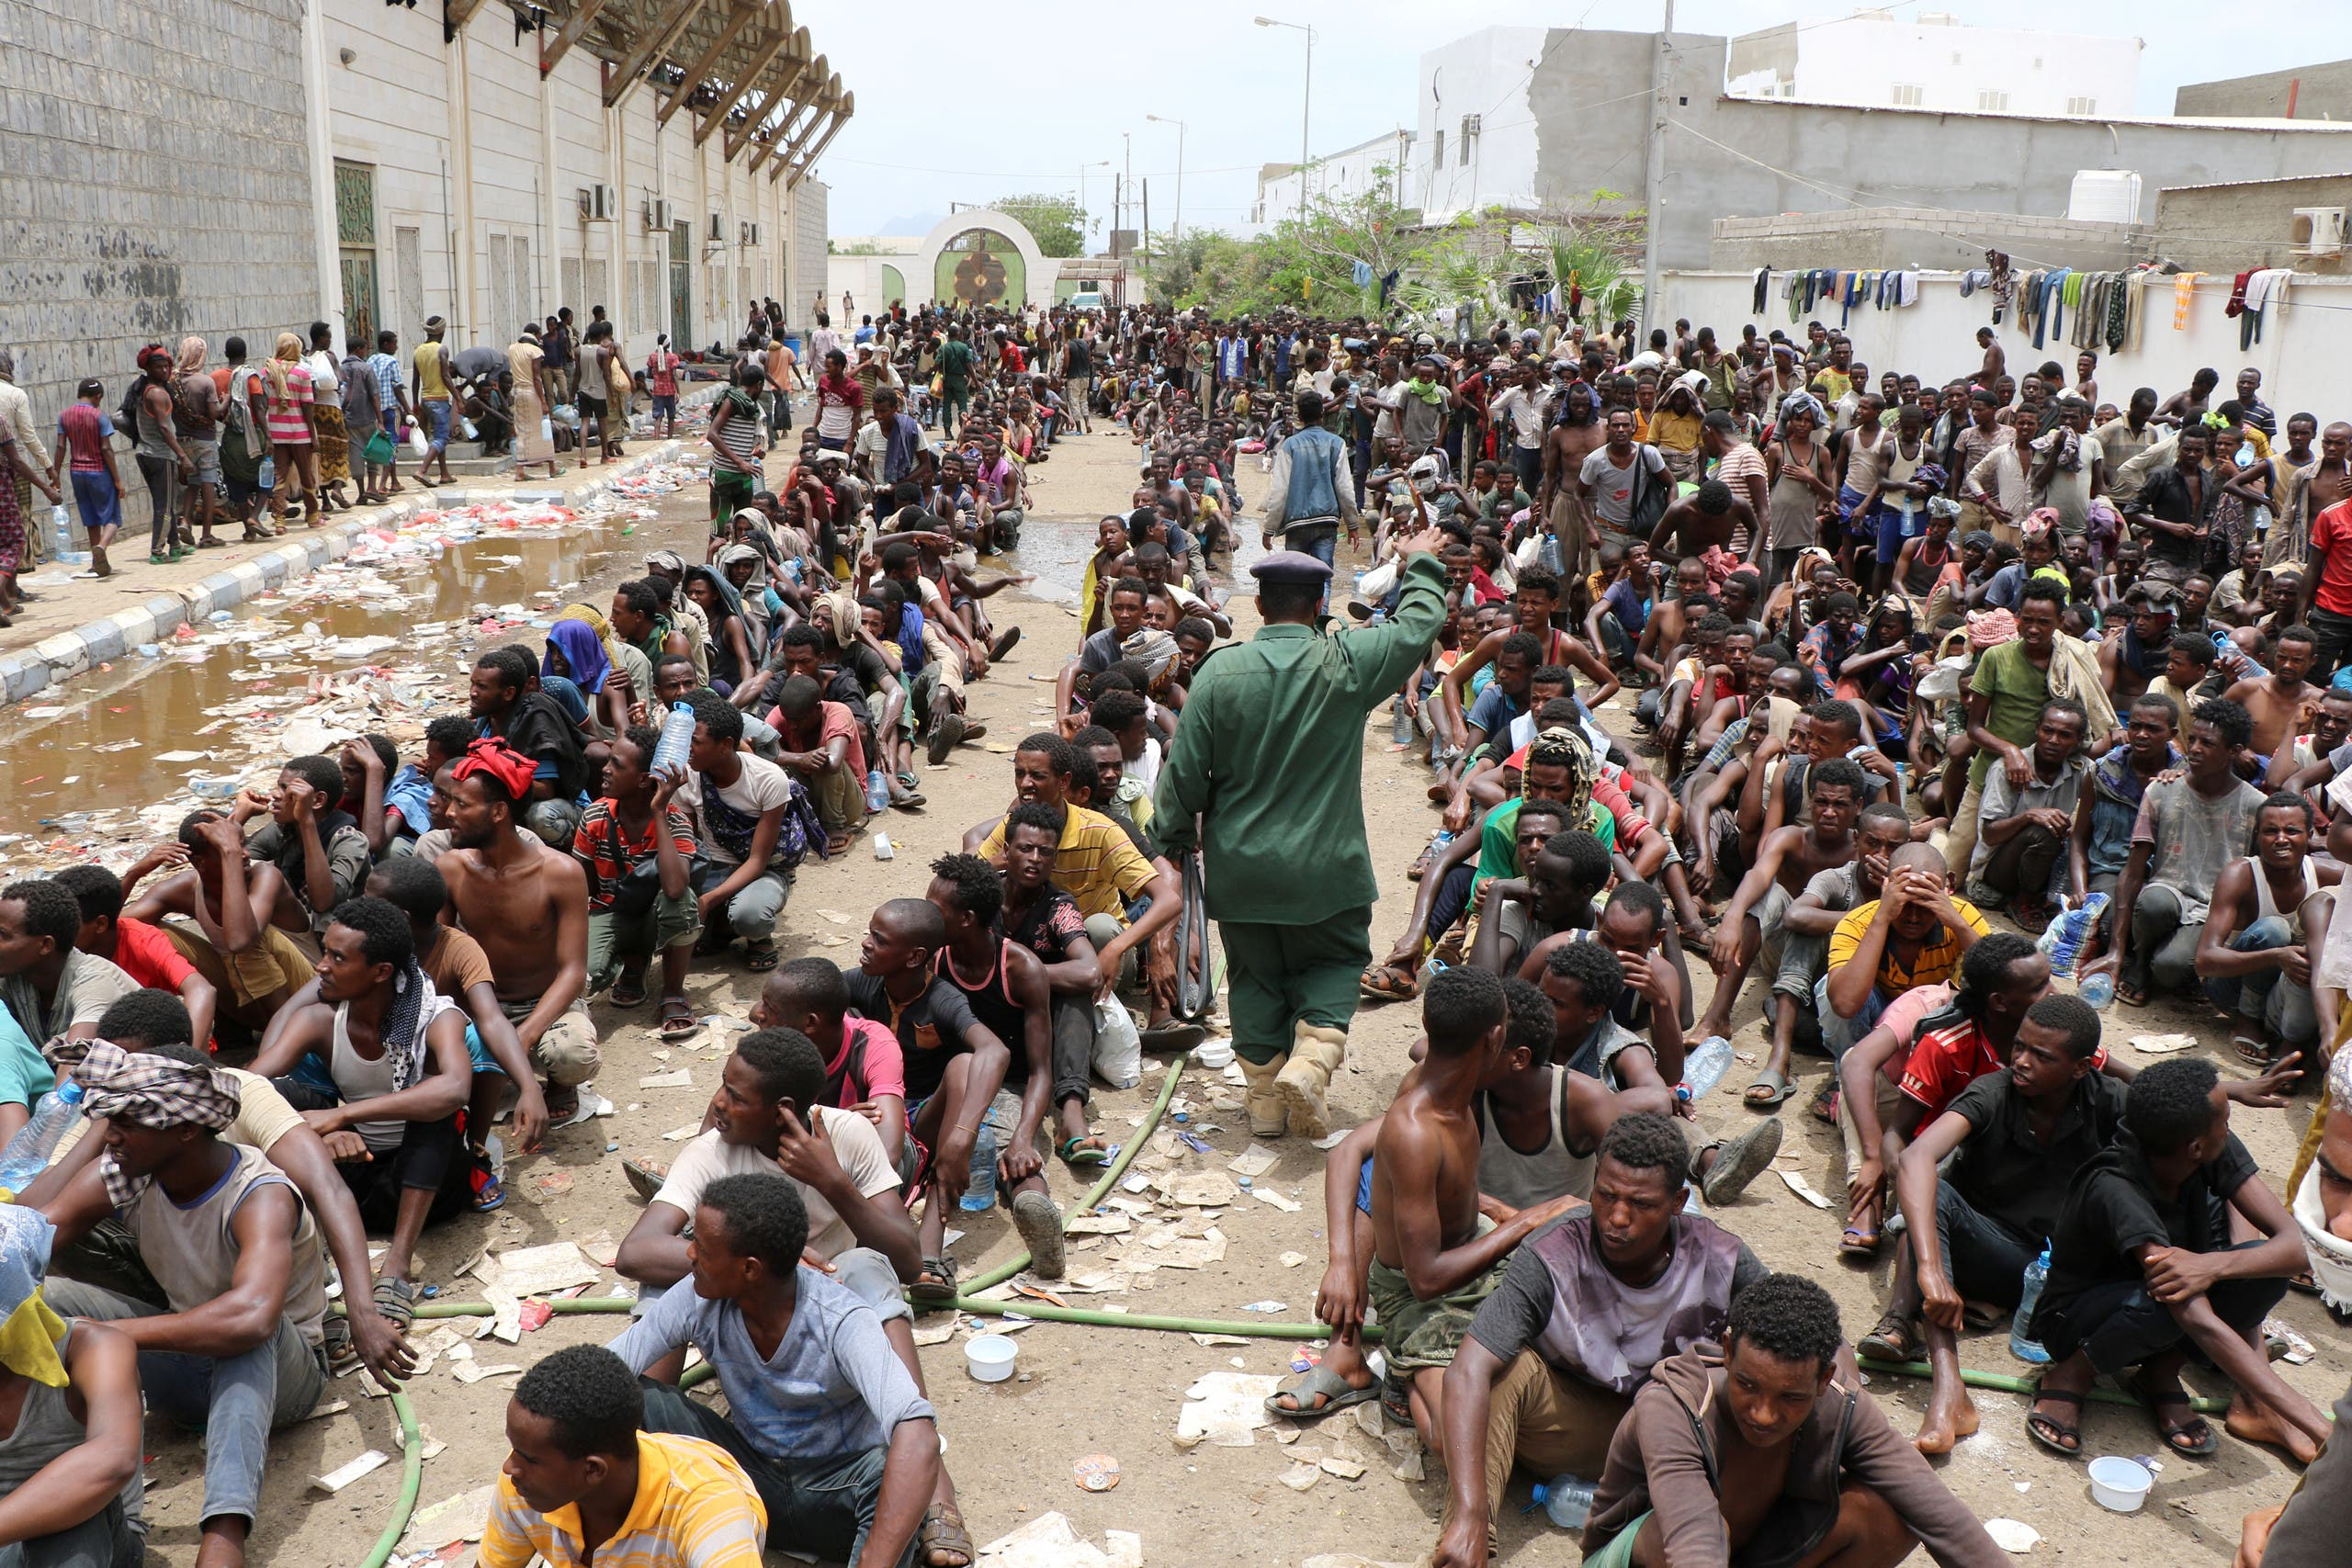 Ethiopian migrants, stranded in war-torn Yemen, sit on the ground of a detention site pending repatriation to their home country, in Aden, Yemen April 24, 2019. (Reuters)